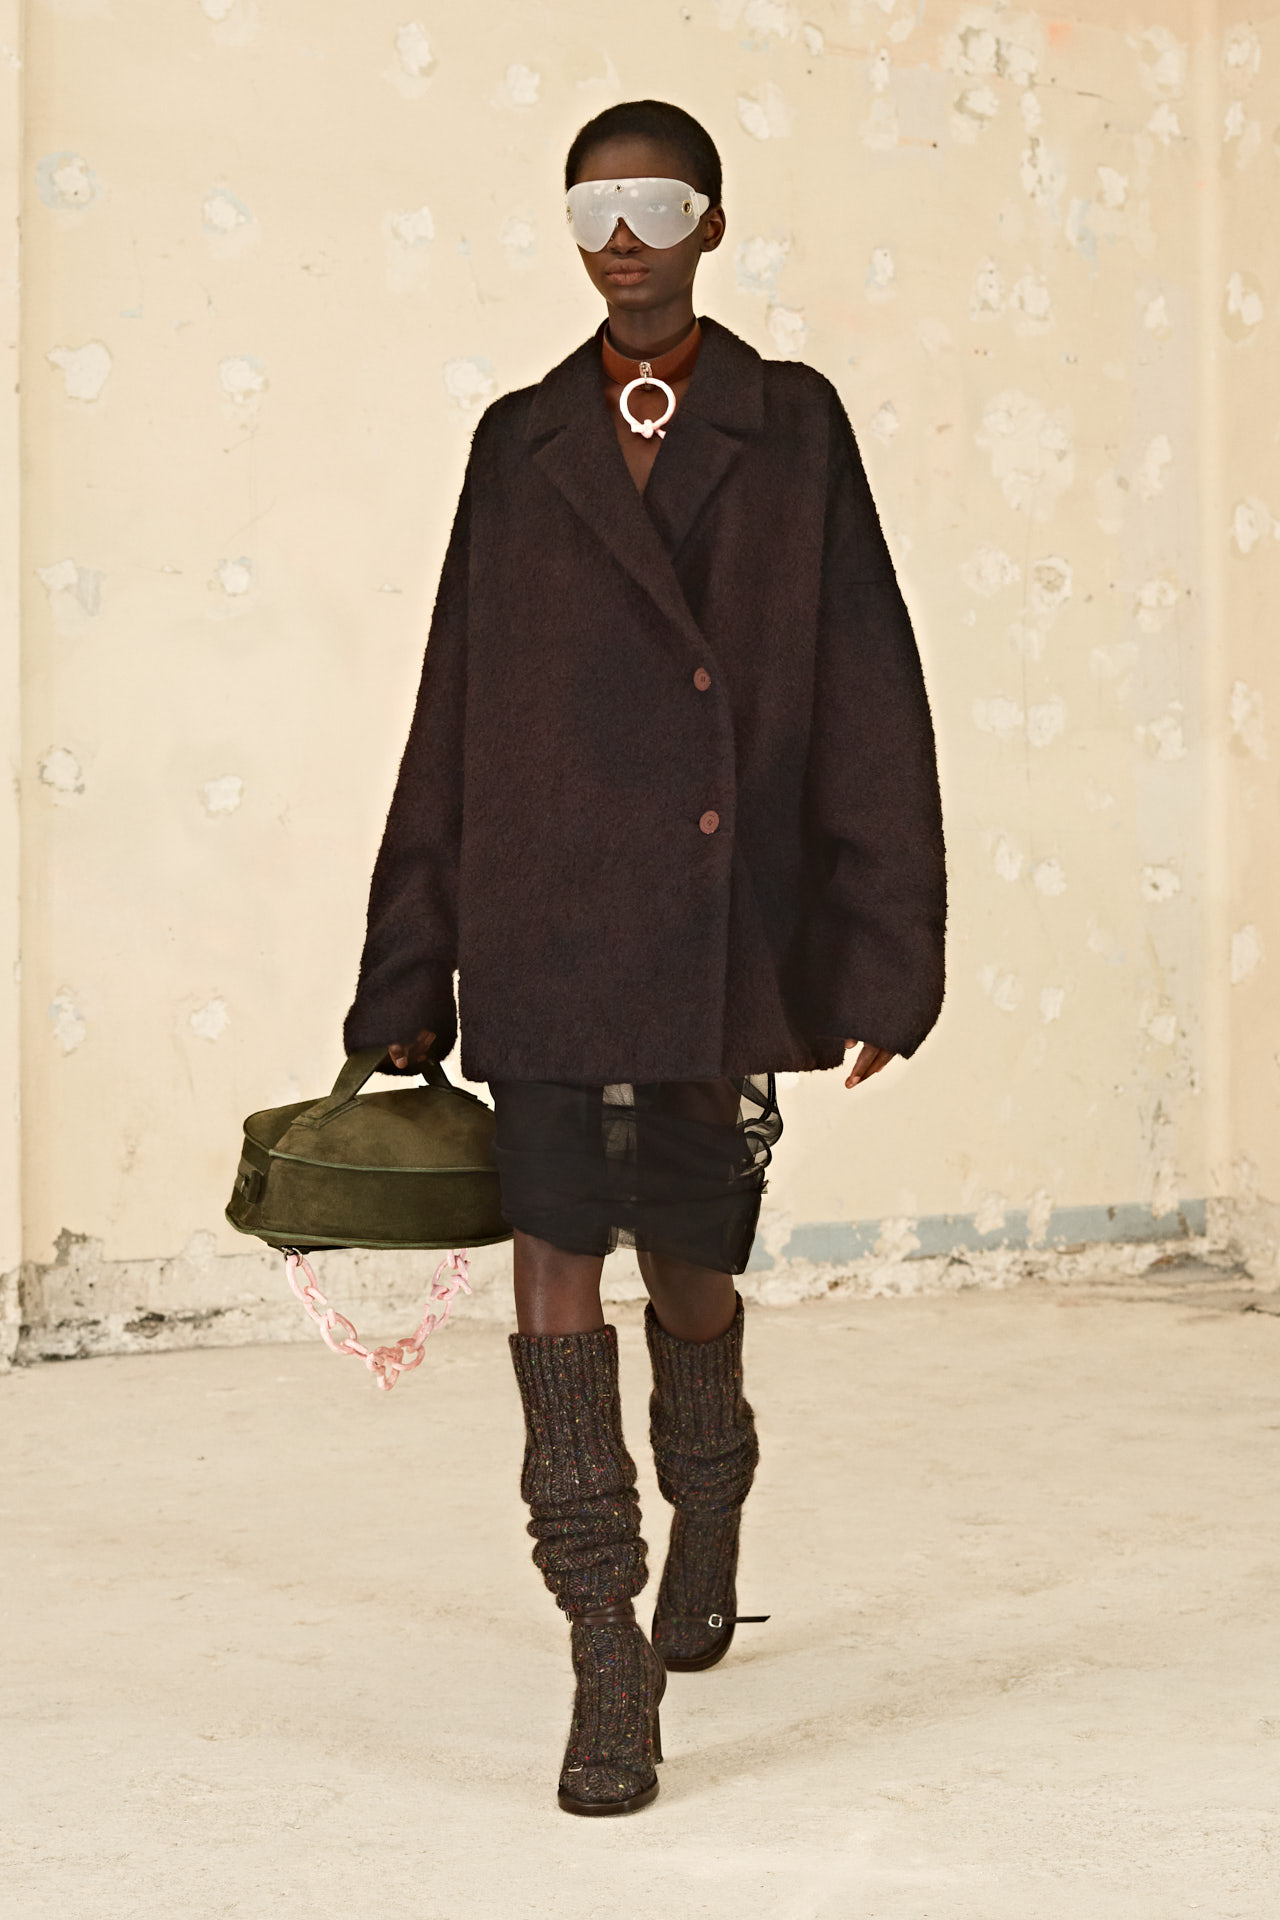 Look Fall/Winter 2021, image 26